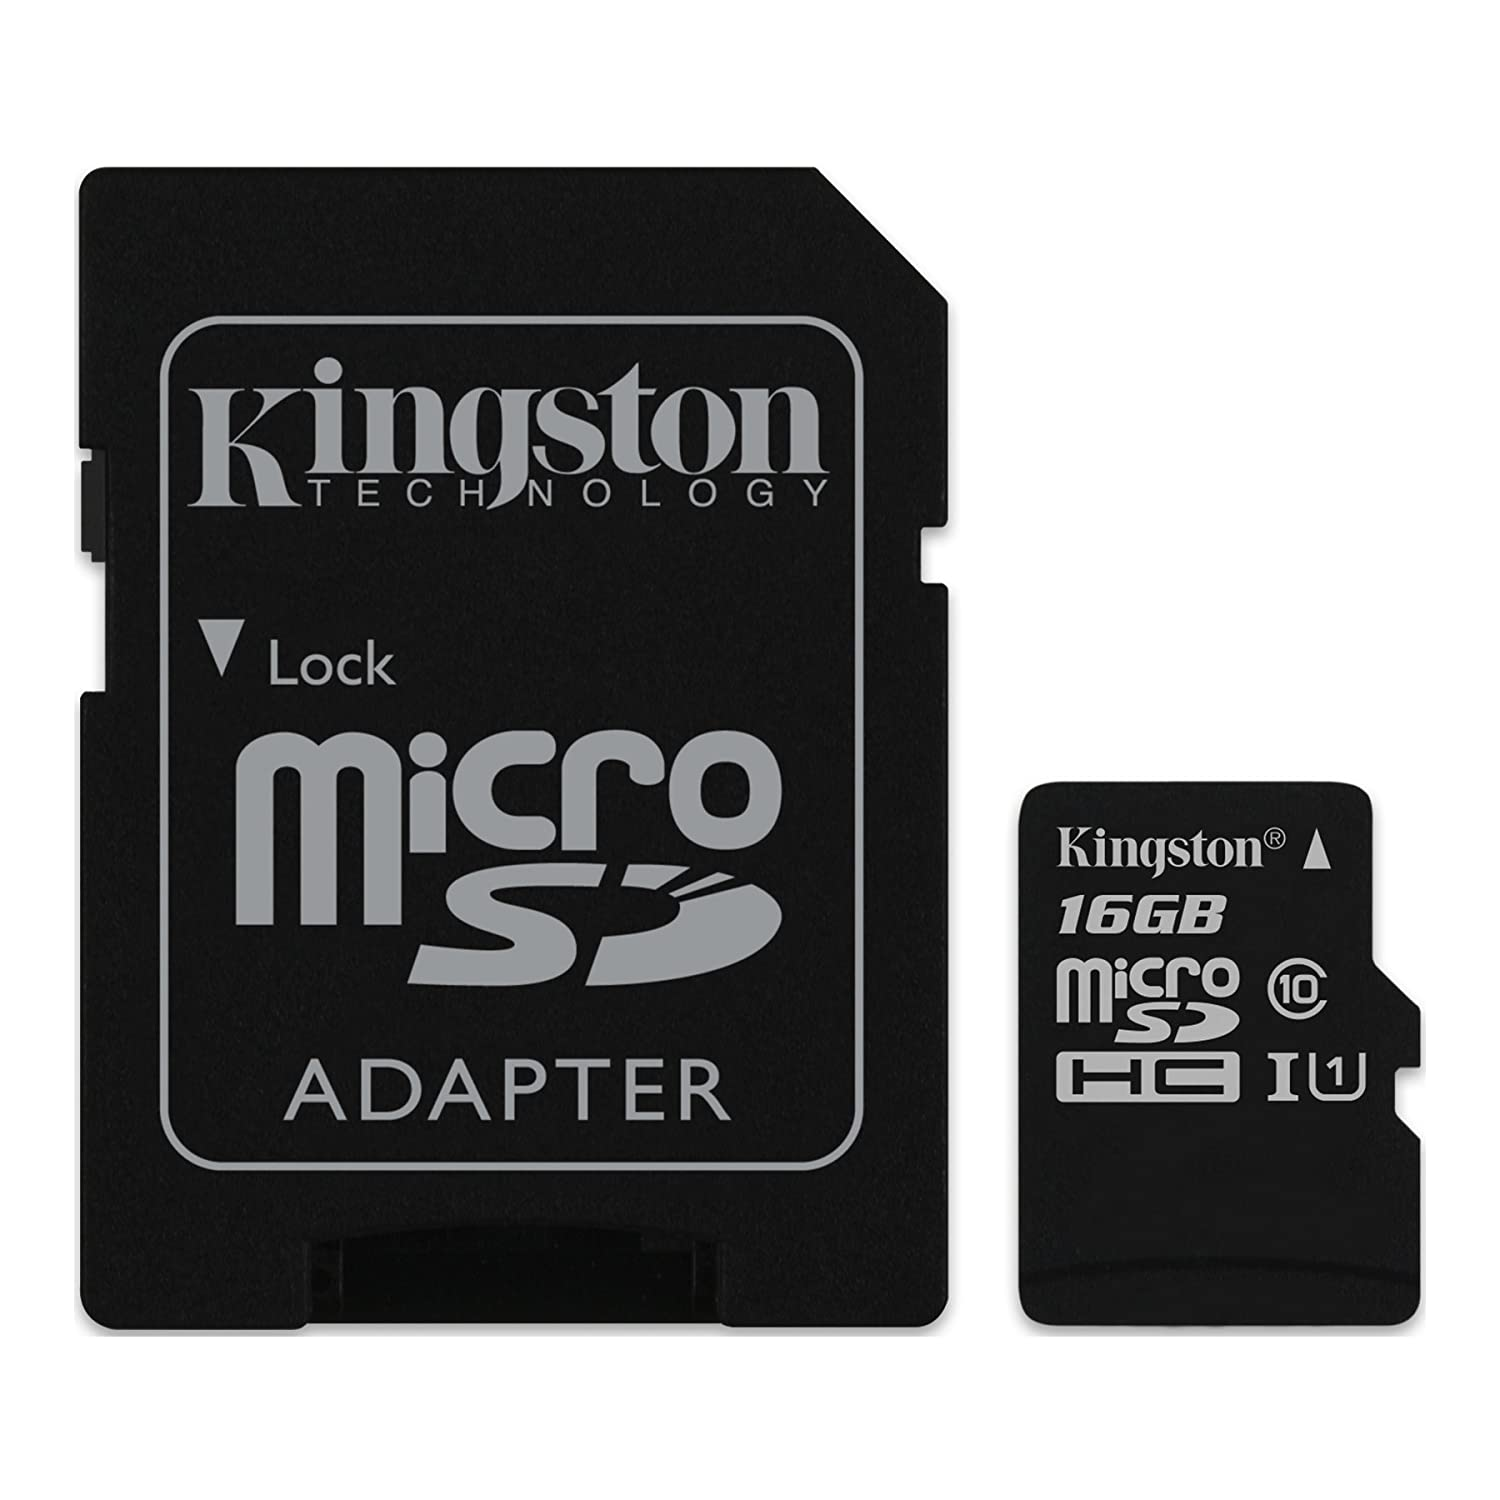 Memory Vgen Ddr3 1 Gb Kingston Digital 16gb Microsdhc Class 10 Uhs I 45mb S Read Card With Sd Adapter Sdc10g2 Computers Accessories